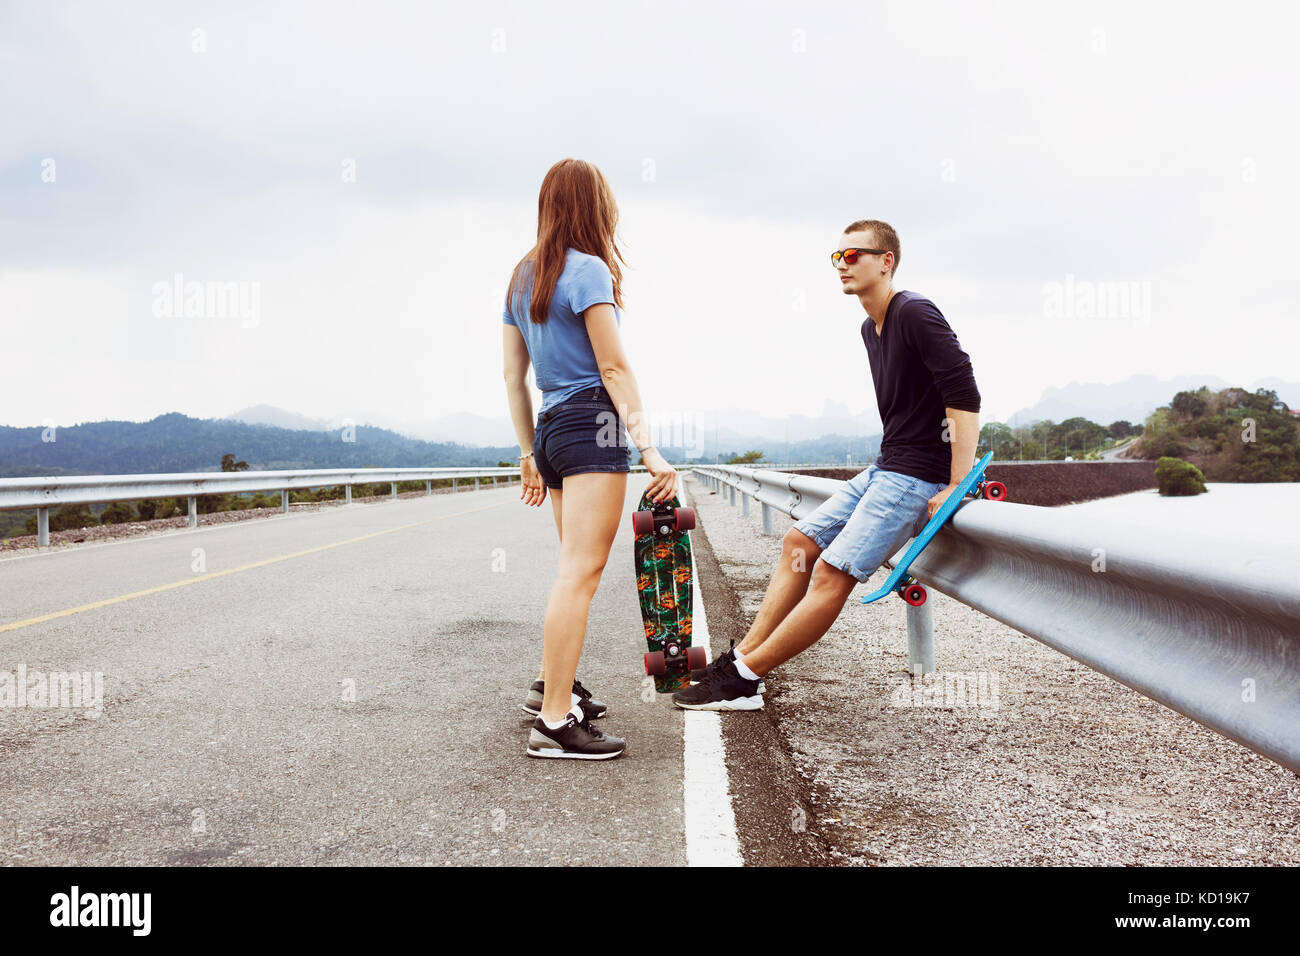 Couple penny skate board road travel - Stock Image